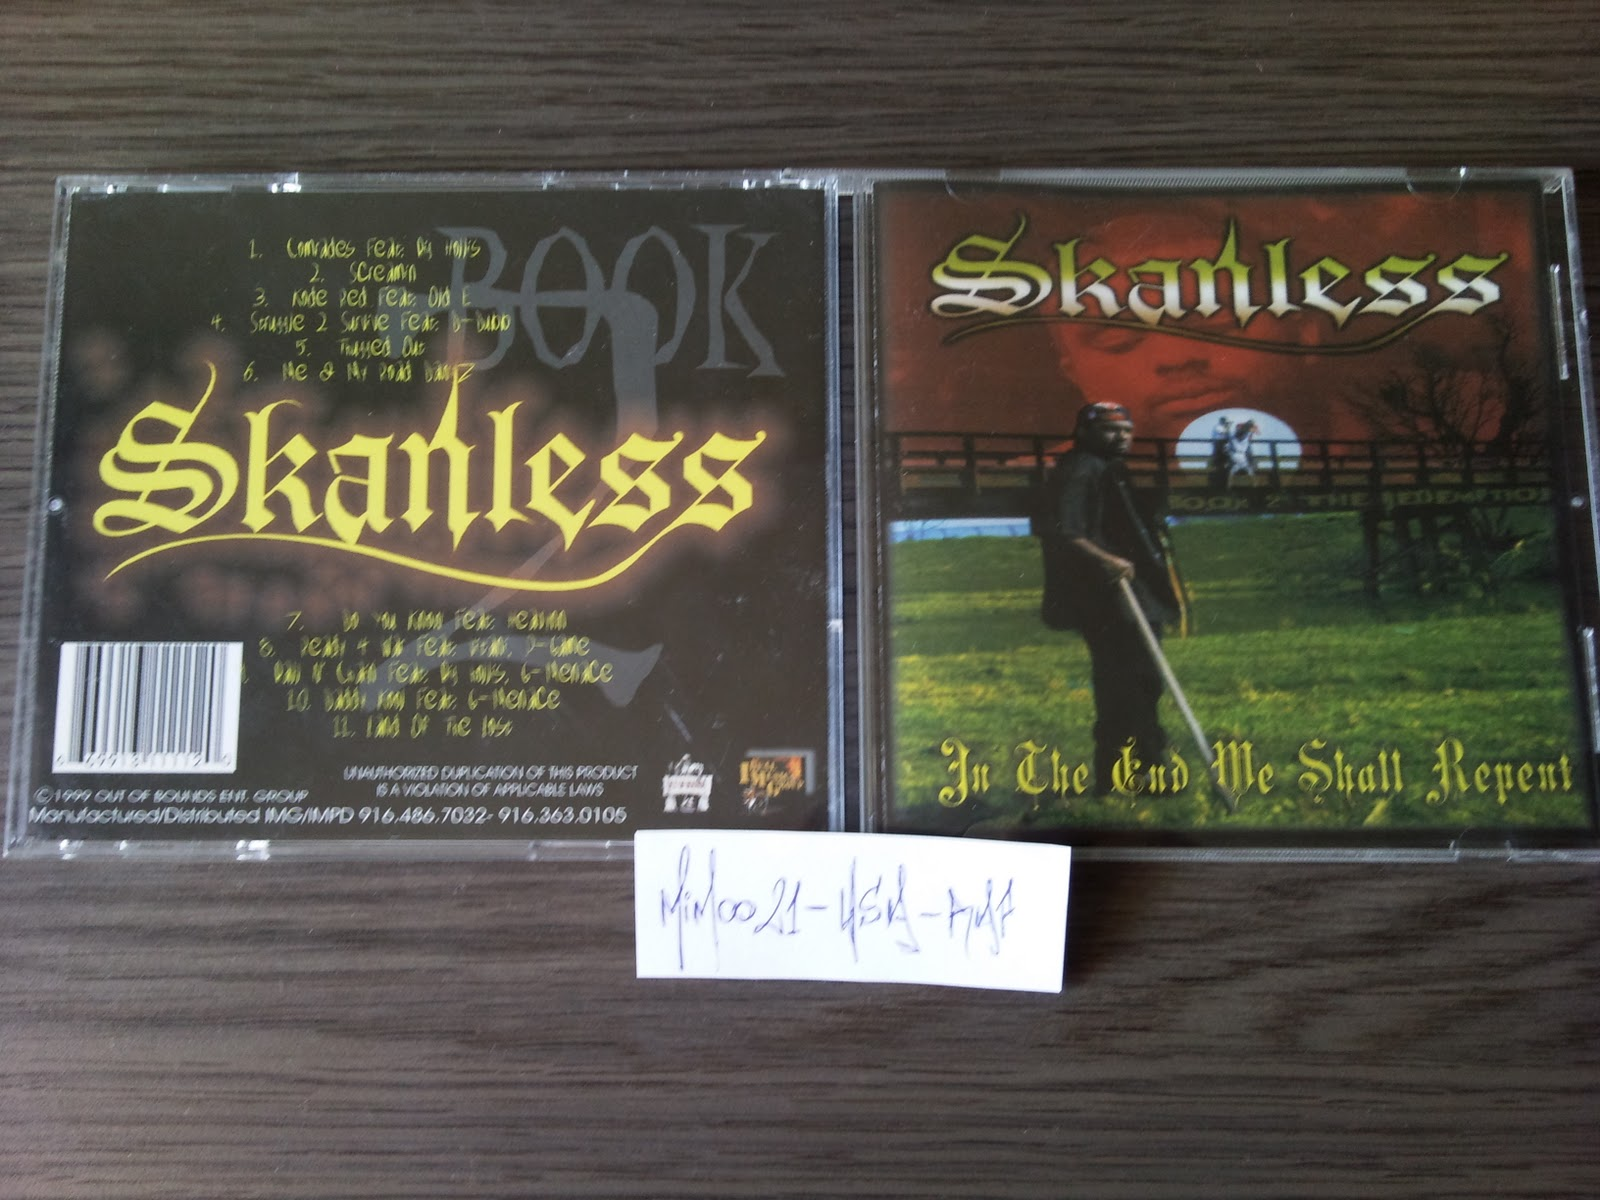 skanless in the end we shall repent